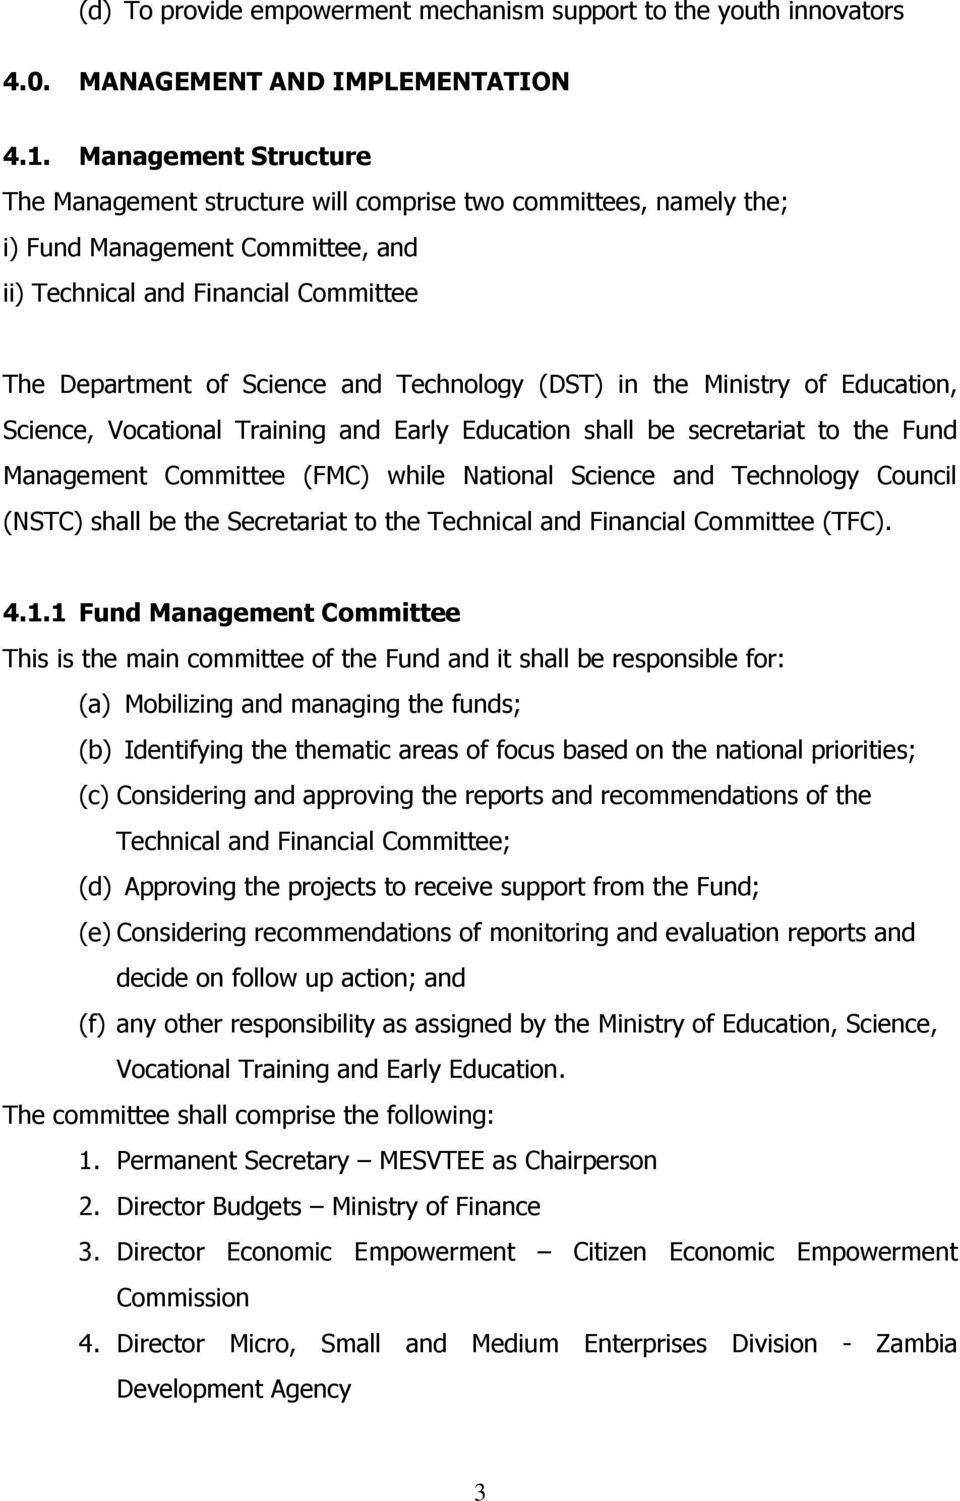 Technology (DST) in the Ministry of Education, Science, Vocational Training and Early Education shall be secretariat to the Fund Management Committee (FMC) while National Science and Technology